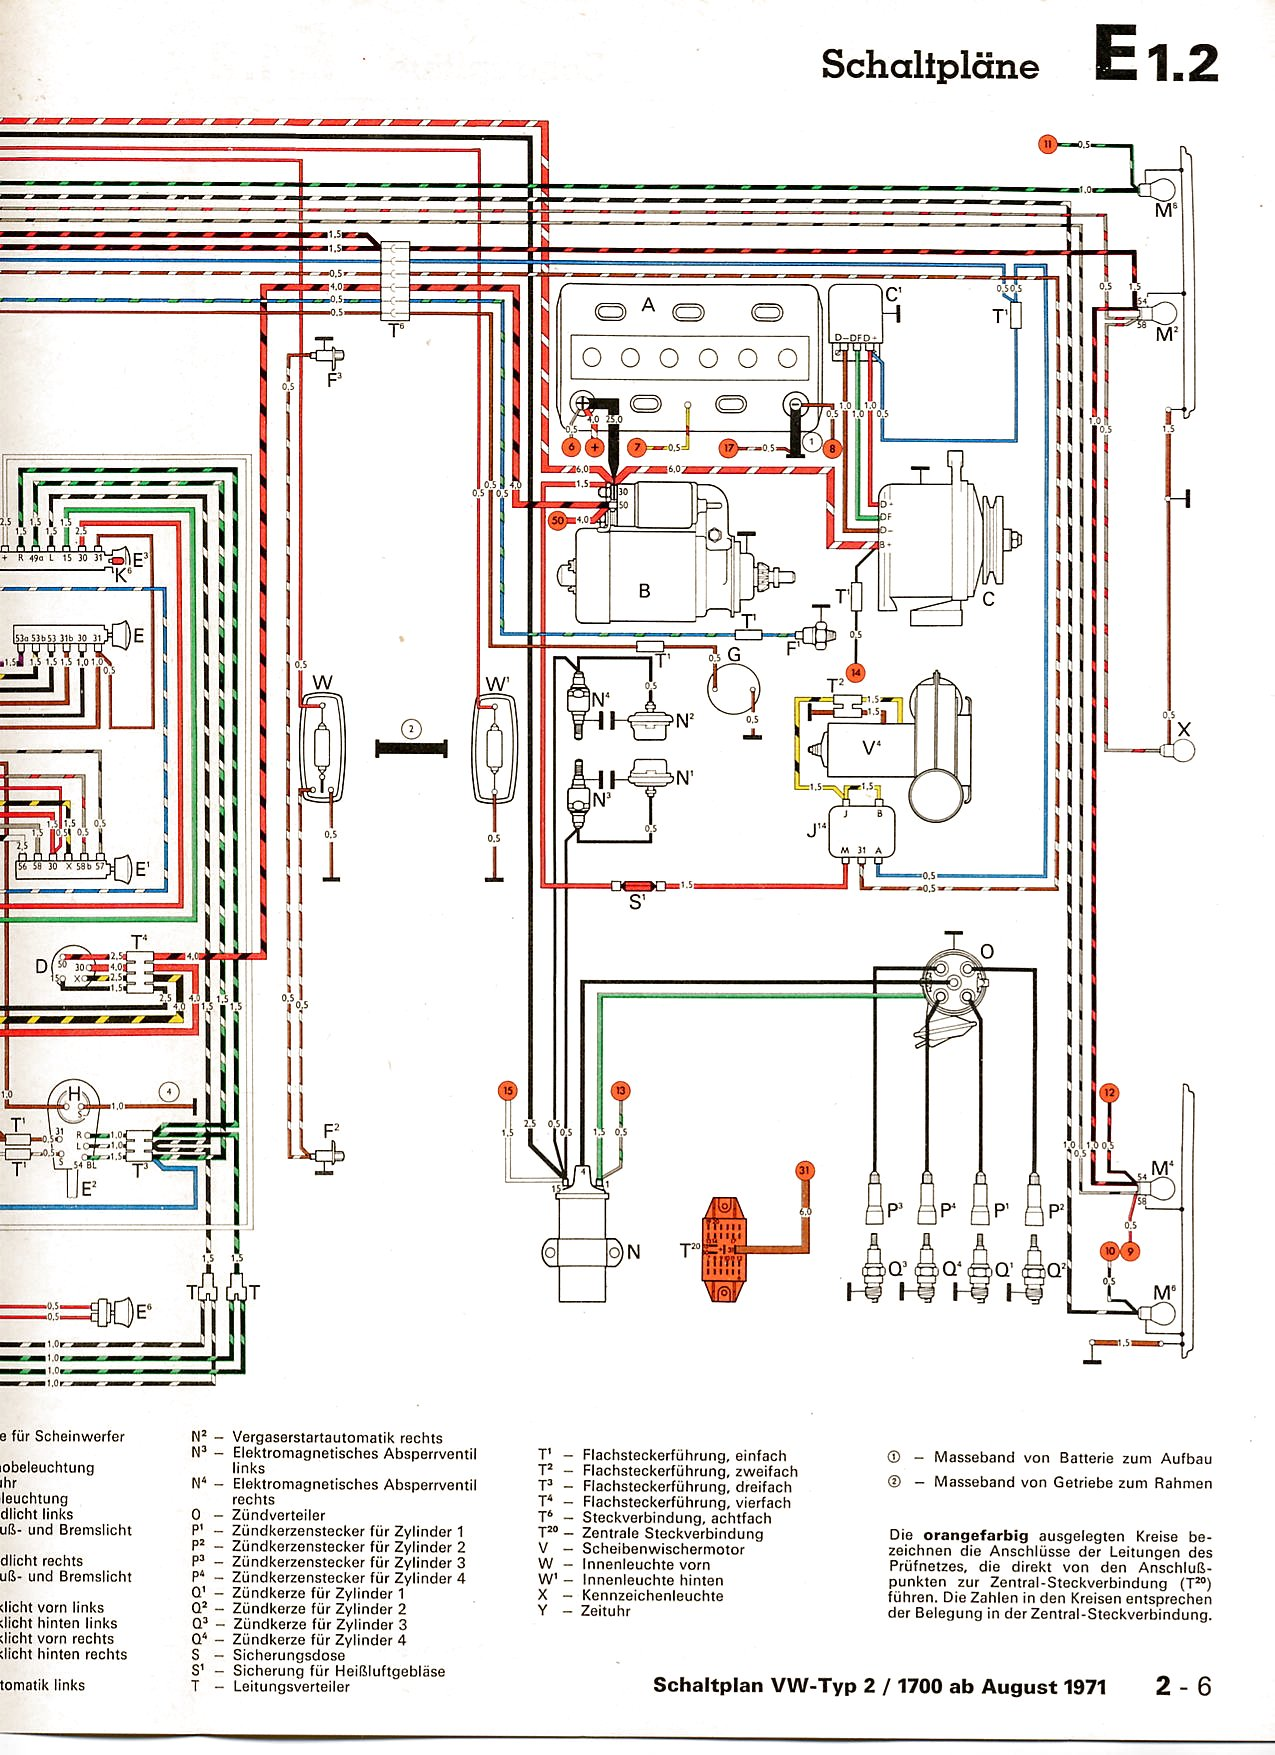 hight resolution of vw t2 wiring diagram 1973 schematic diagrams rh 11 fitness mit trampolin de 2 0 vw type 2 engine diagram vw type 4 engine diagram